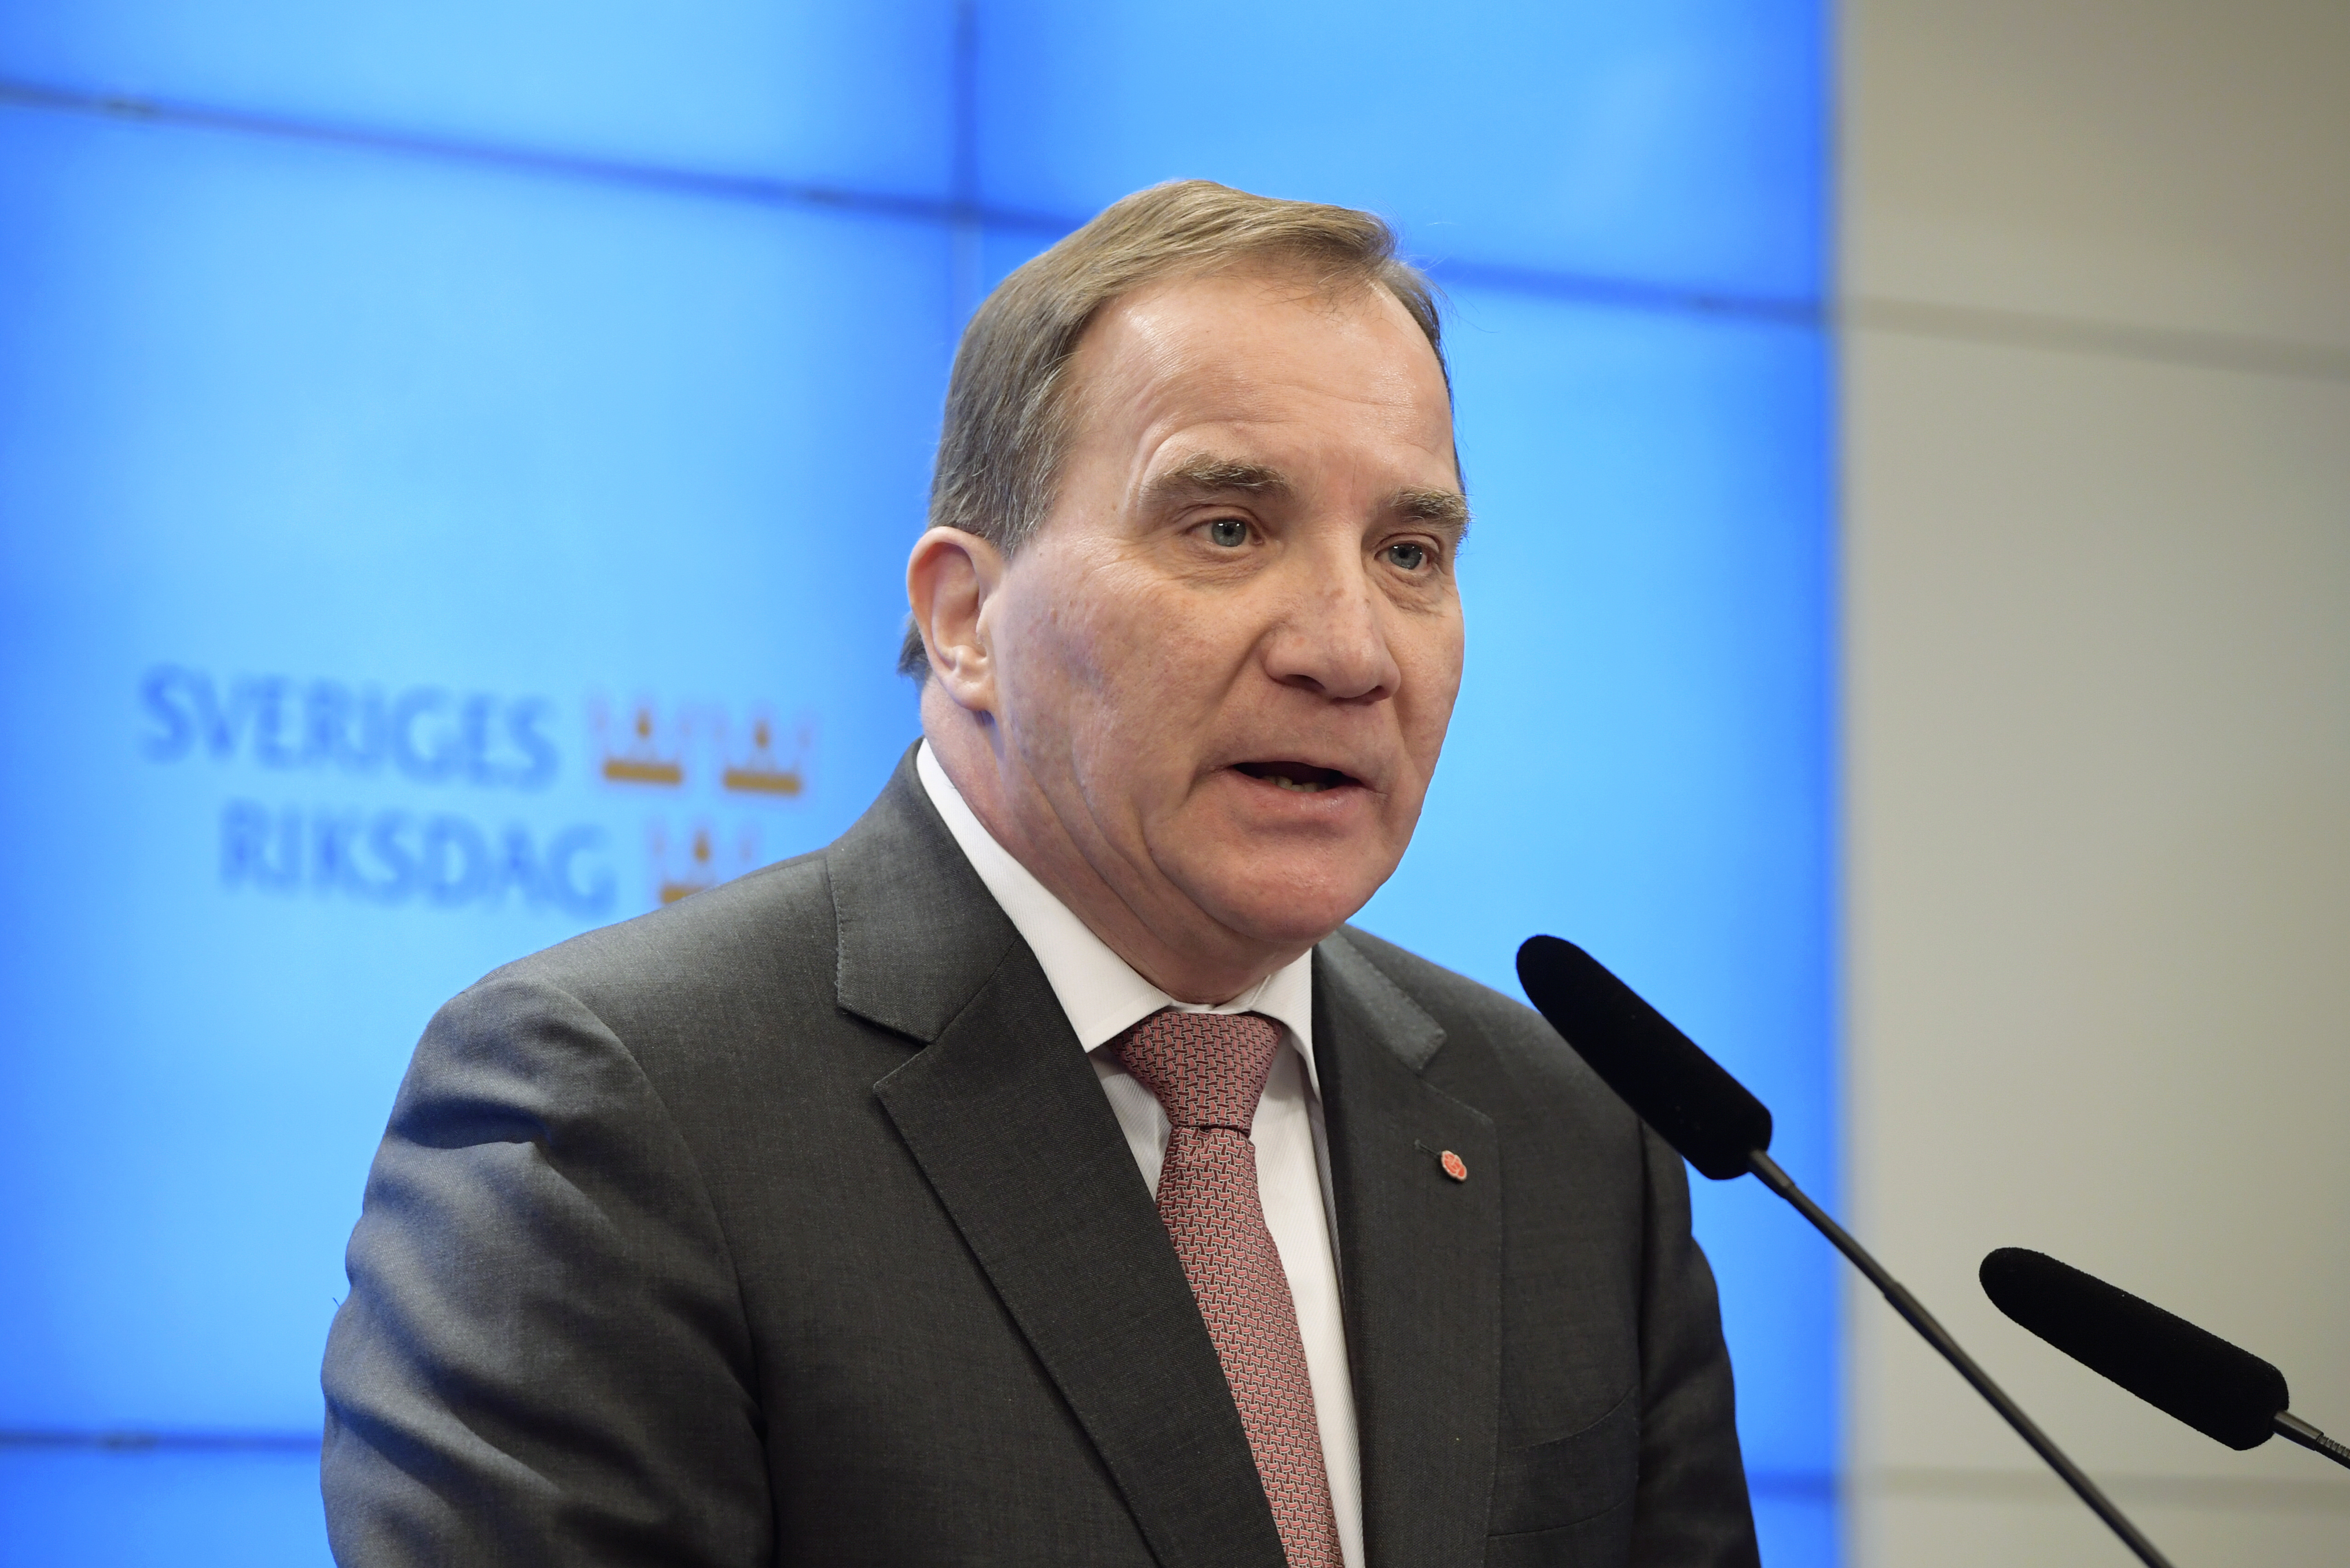 Sweden's Prime Minister Stefan Lofven attends a press conference after his meeting with the Speaker of the parliament Andreas Norlen, in Stockholm,  Monday, Jan. 14, 2019.  The Speaker of the Swedish Parliament Riksdagen will Monday present a proposal to the Riksdag for a candidate for Prime Minister. (Anders Wiklund/TT News Agency via AP)